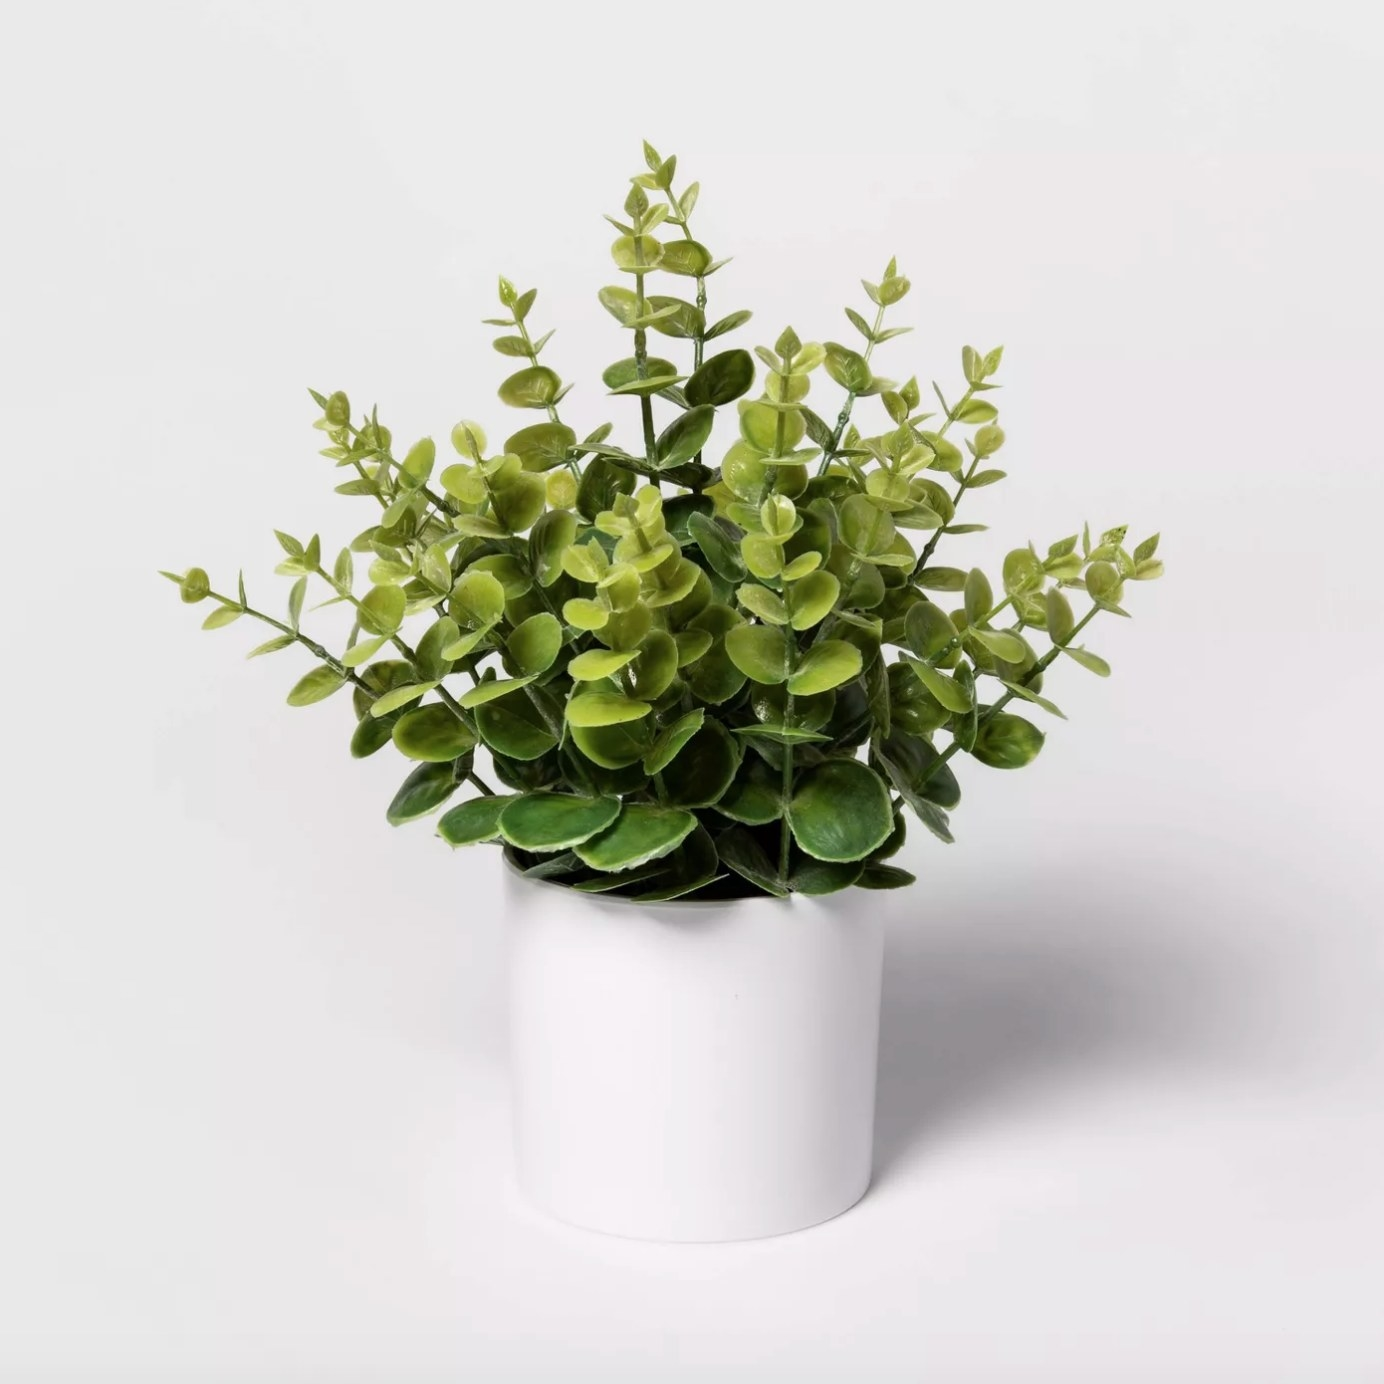 The artificial eucalyptus plant in a white pot